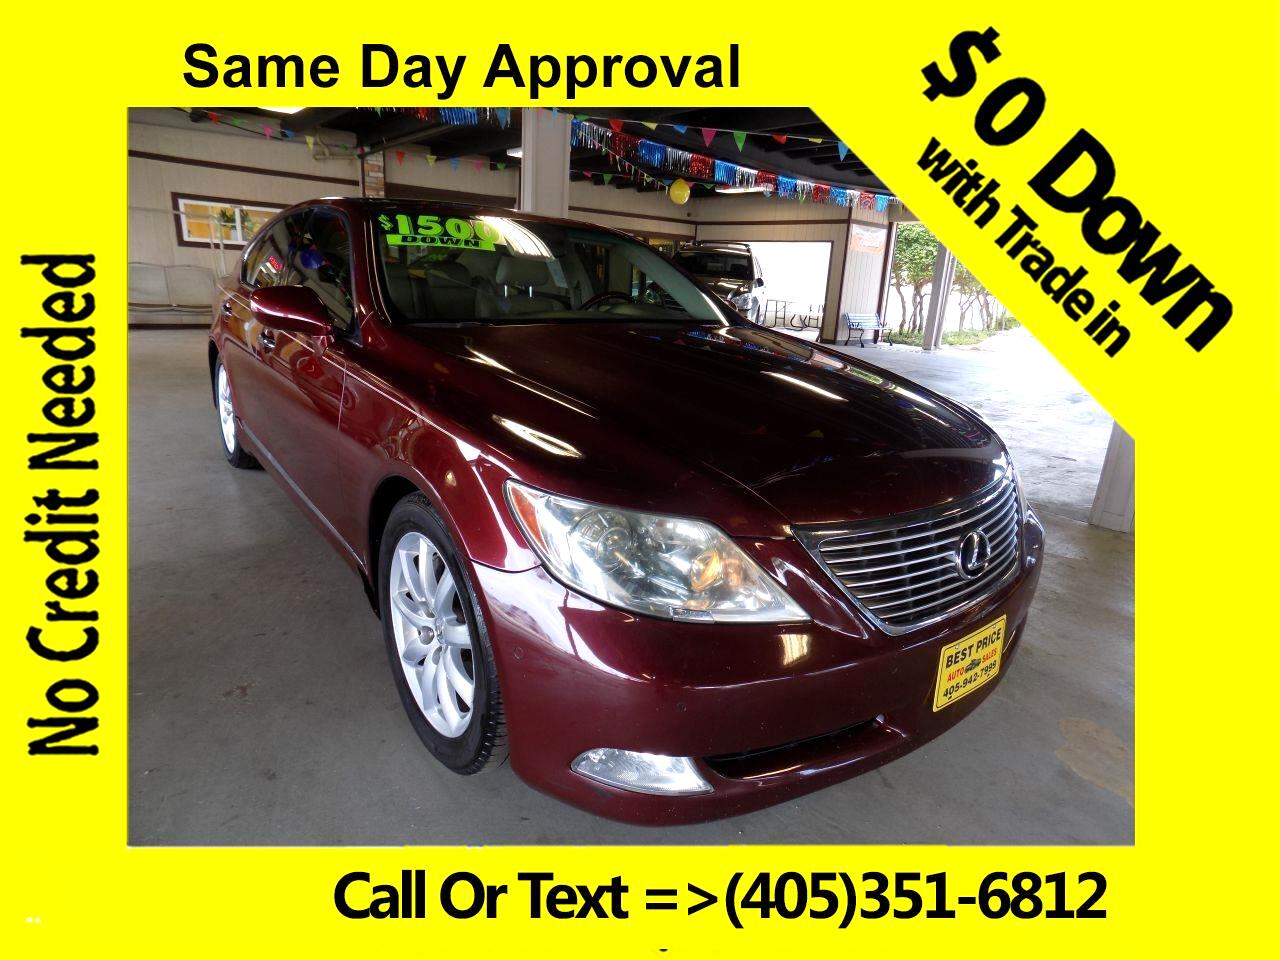 2007 Lexus LS 460 Luxury Sedan